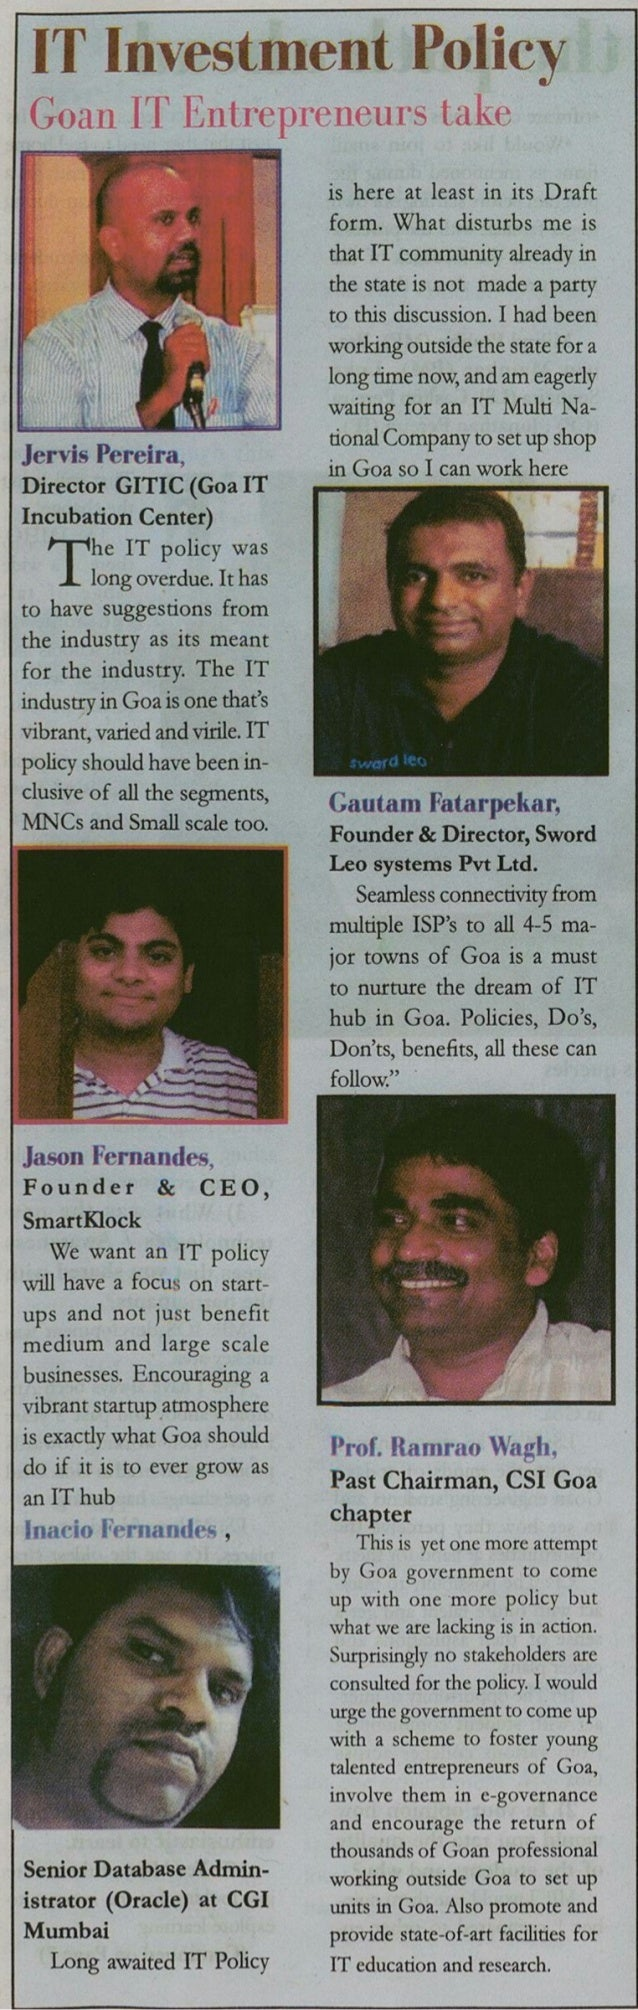 IT Investment Ptrllrjty        Jervis Pcreira,  Director GITIC (Goa IT Incubation Center)  he IT policy was  long overdue....